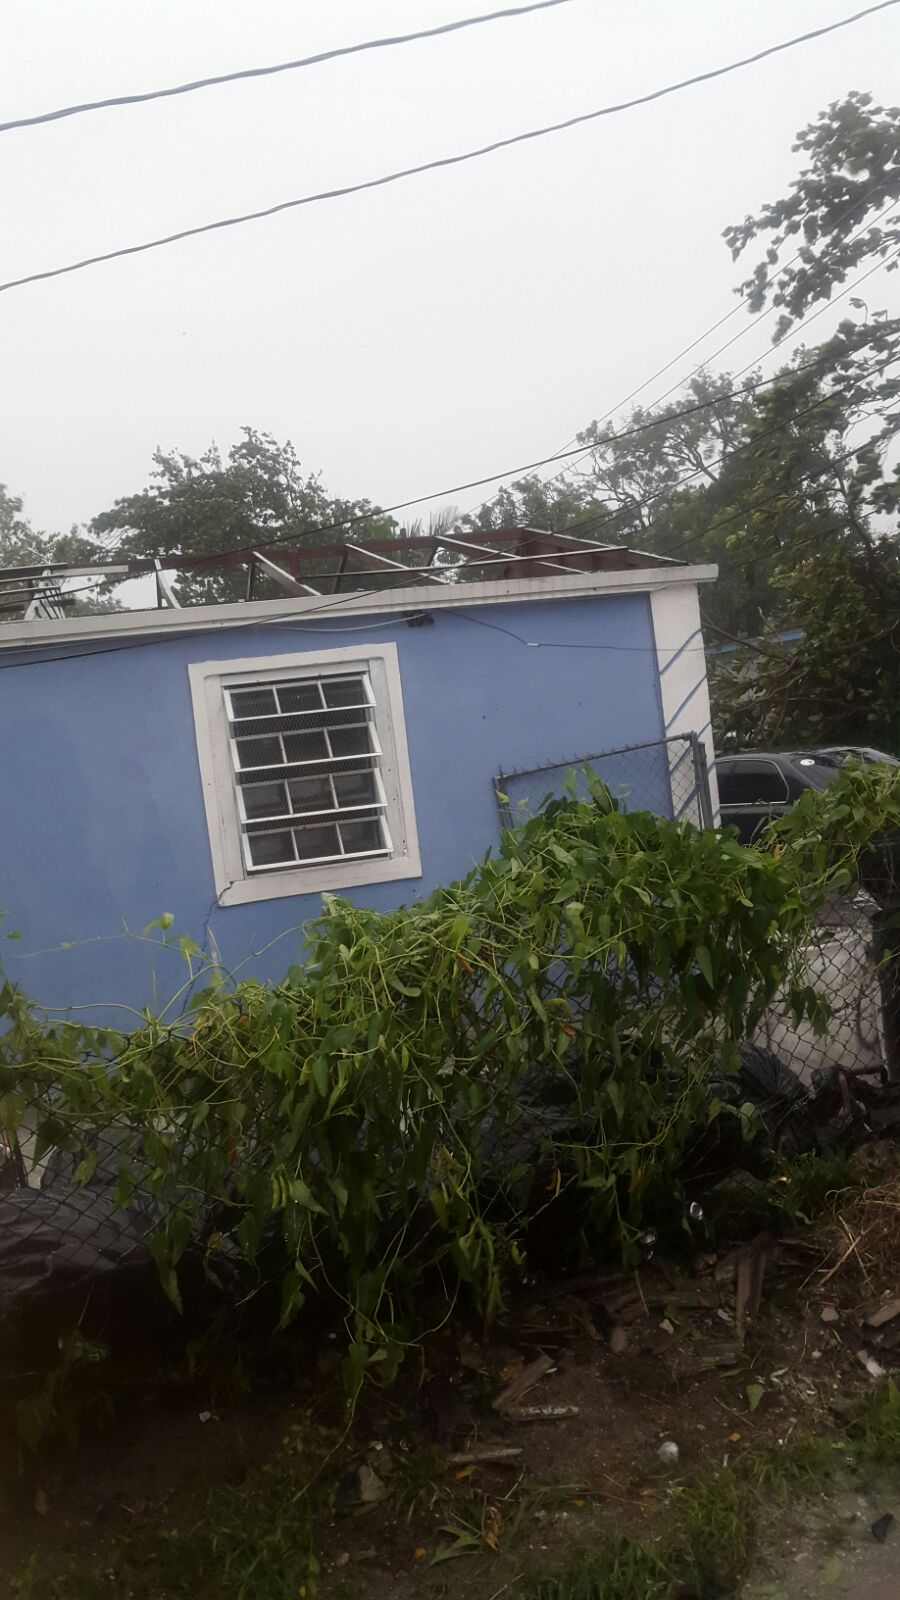 Major Damage And Flood In New Providence Bahamas Following